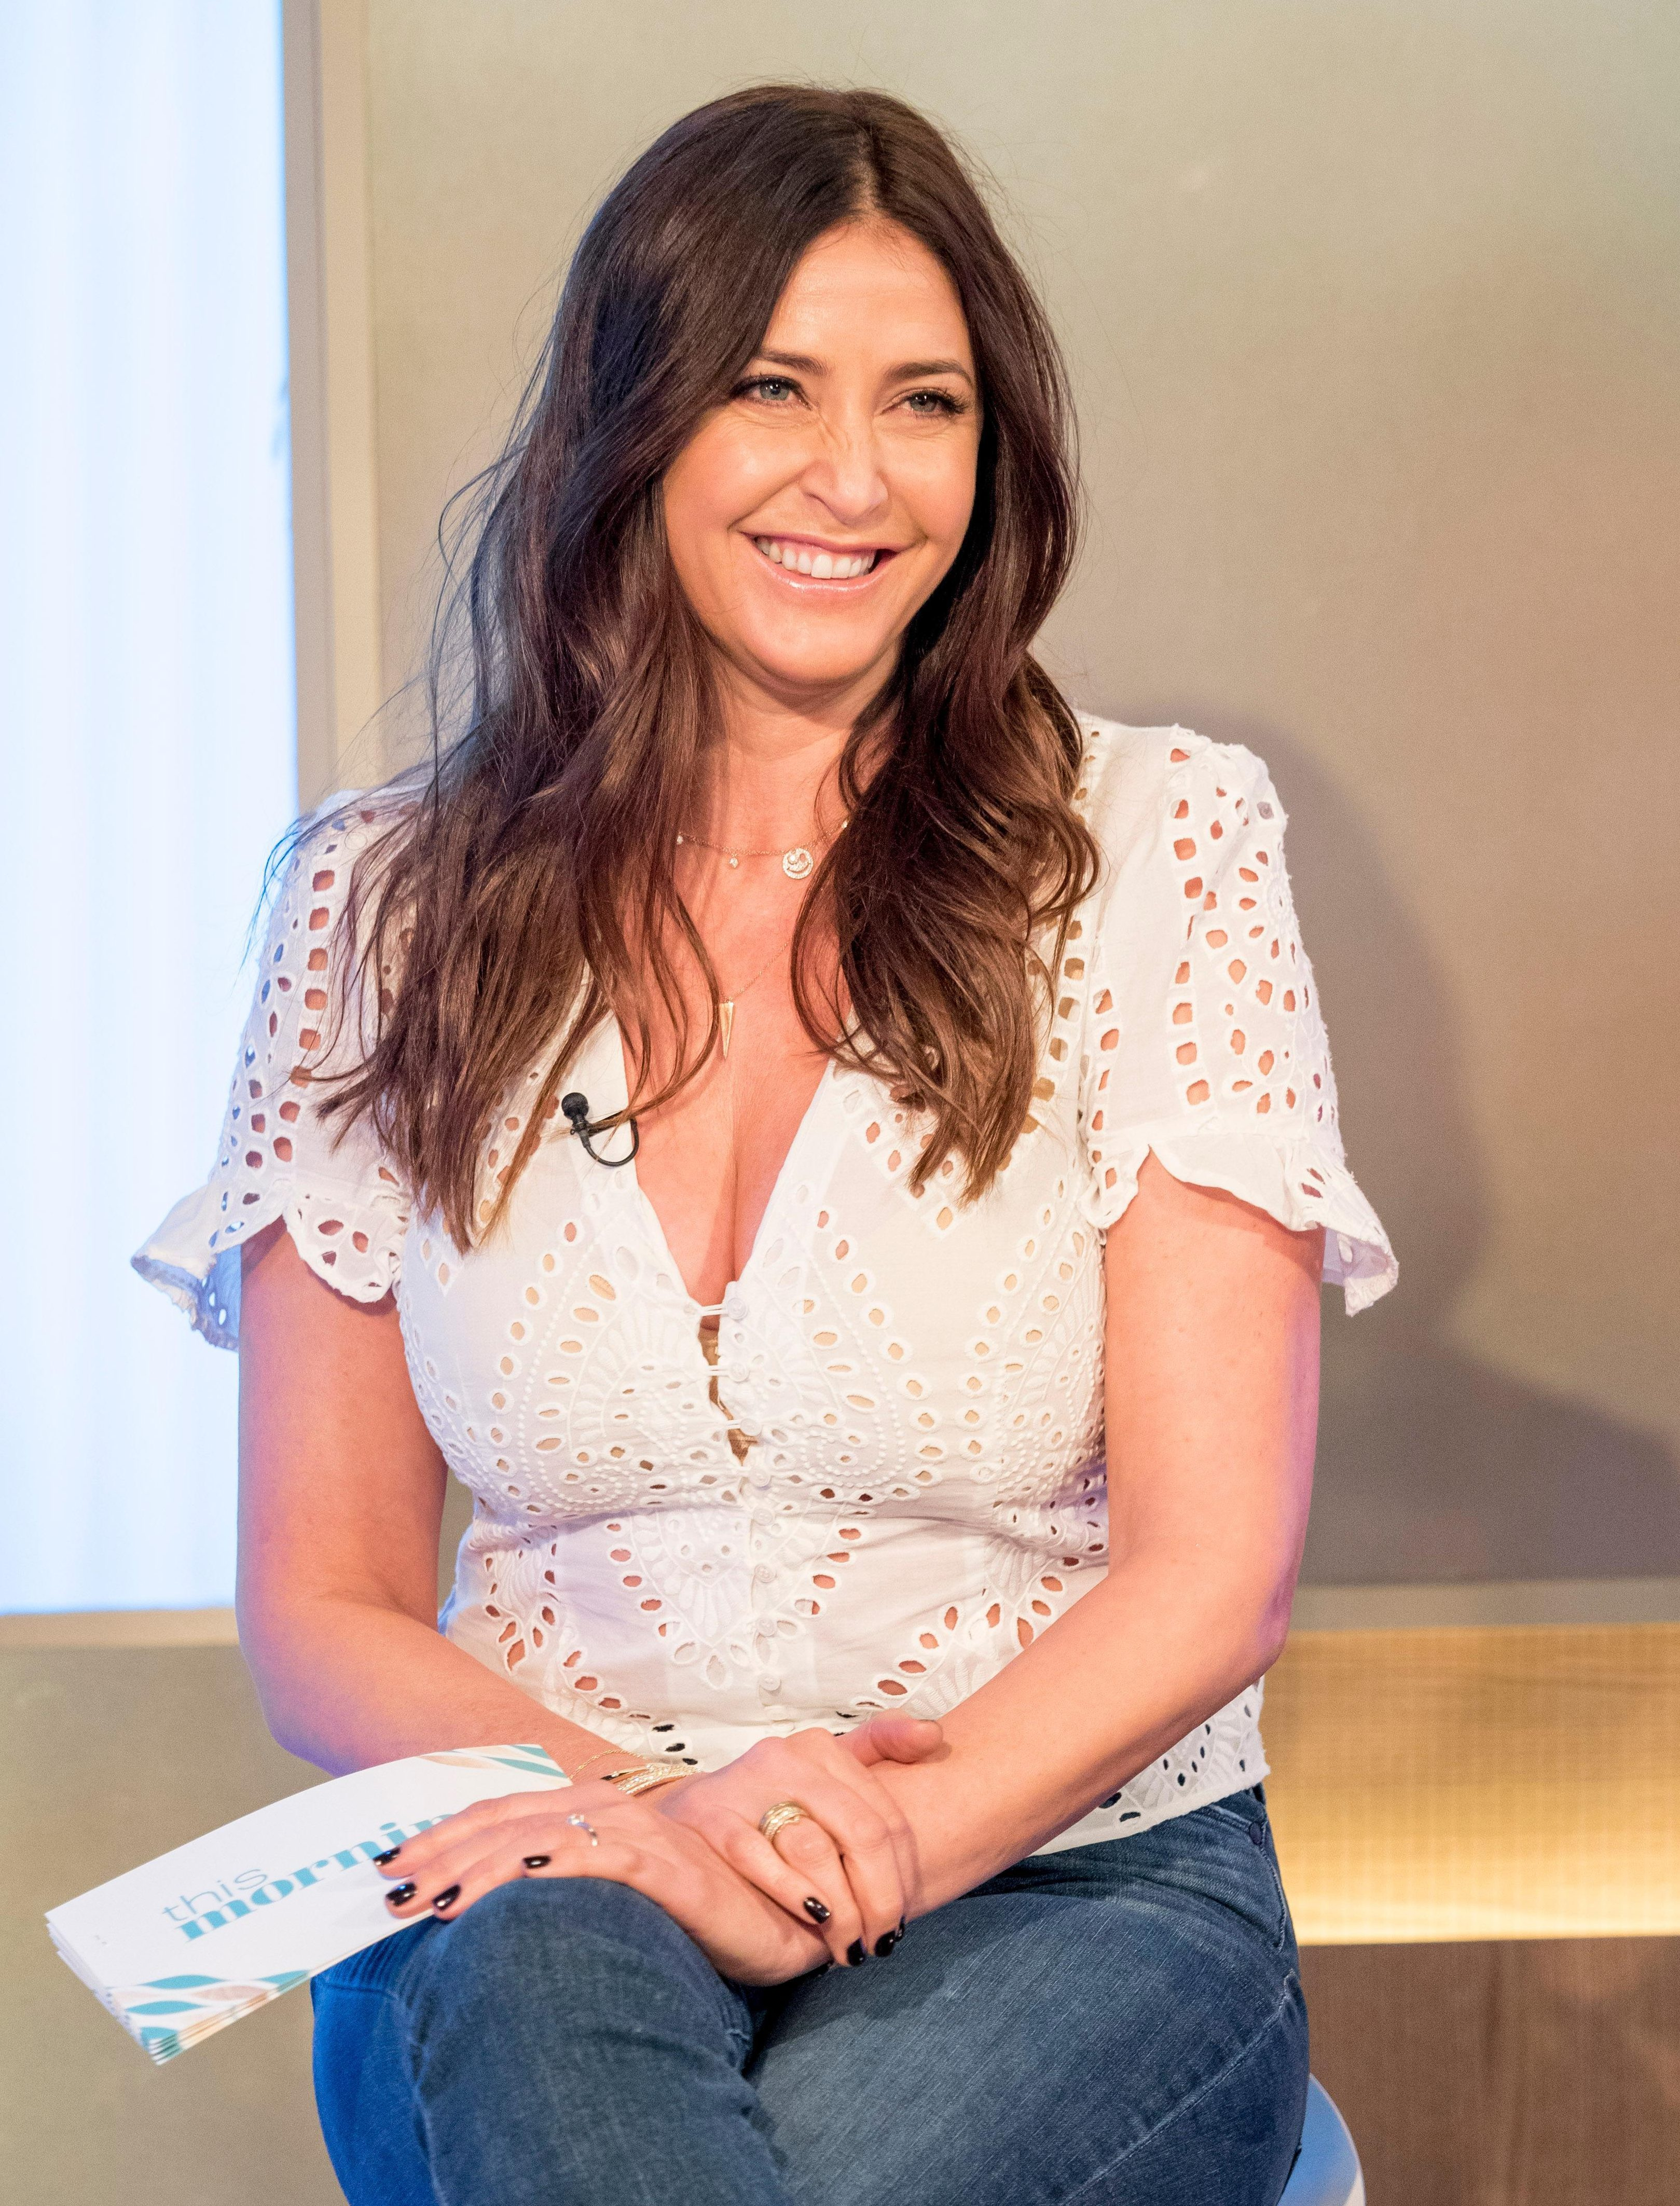 Lisa snowdon and george clooney dating contract